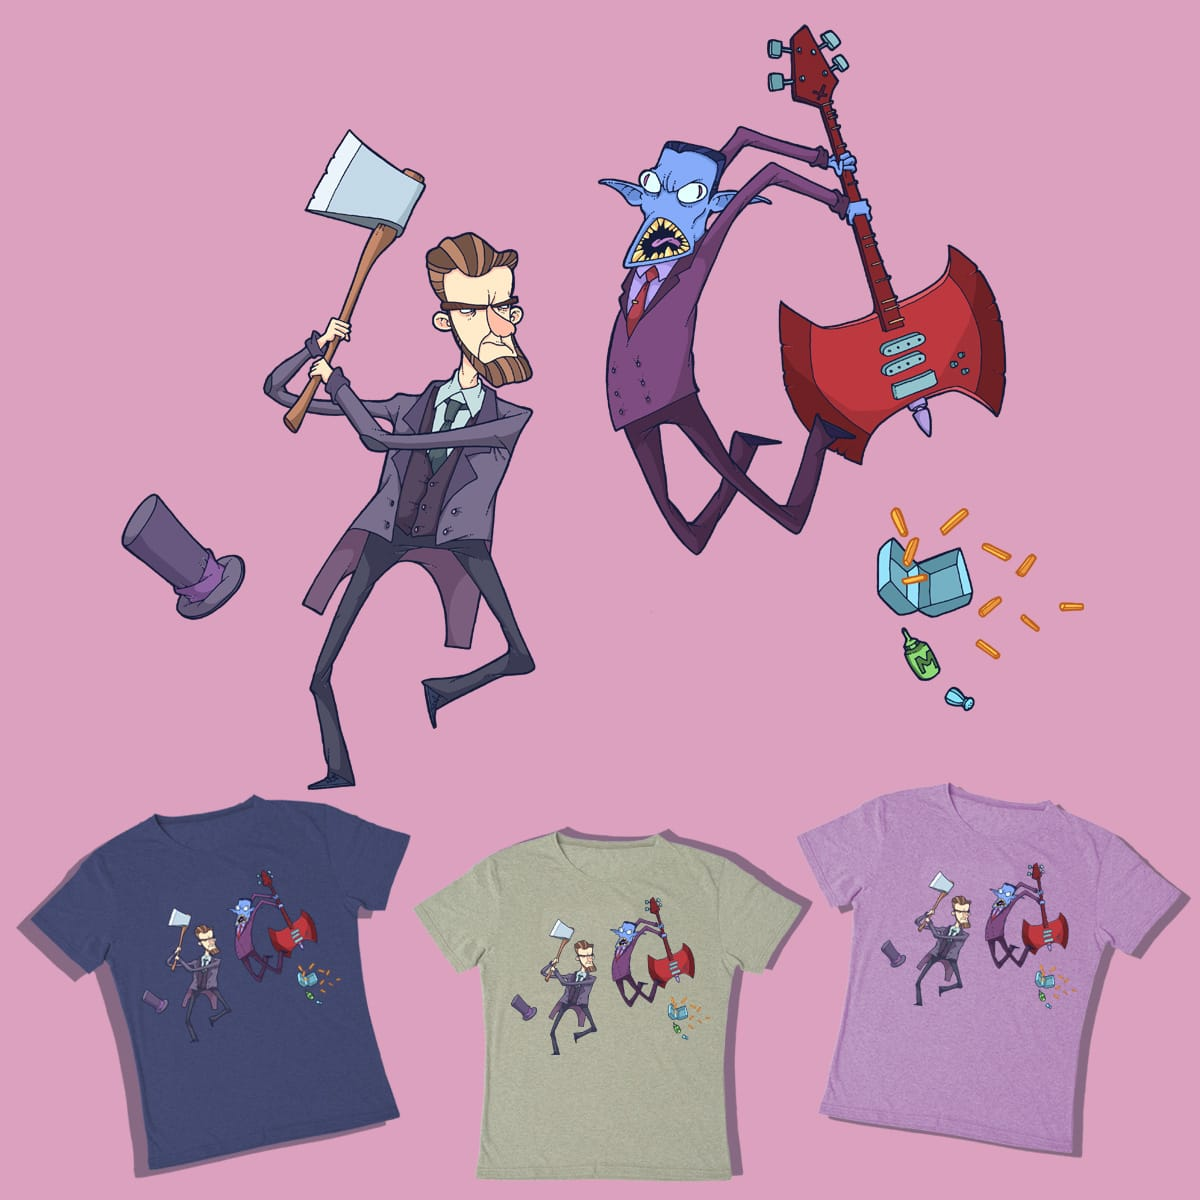 Abraham Lincoln Vs Hunson Abadeer by lost-angel-less on Threadless